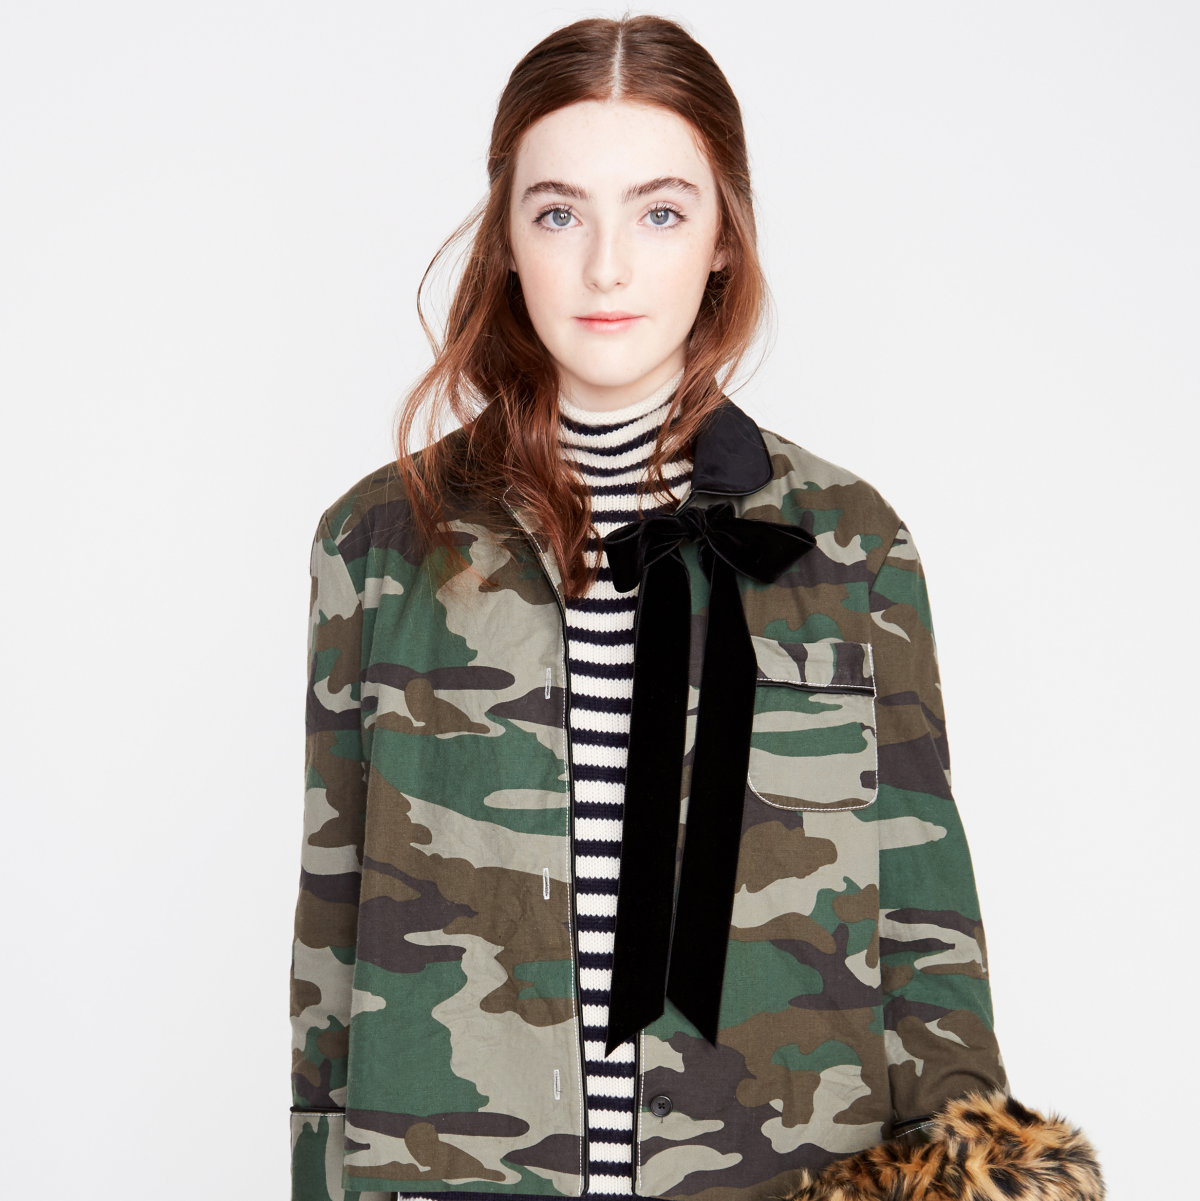 Julianne Moore daughter Liv Freundlich modeling J.Crew fall collection